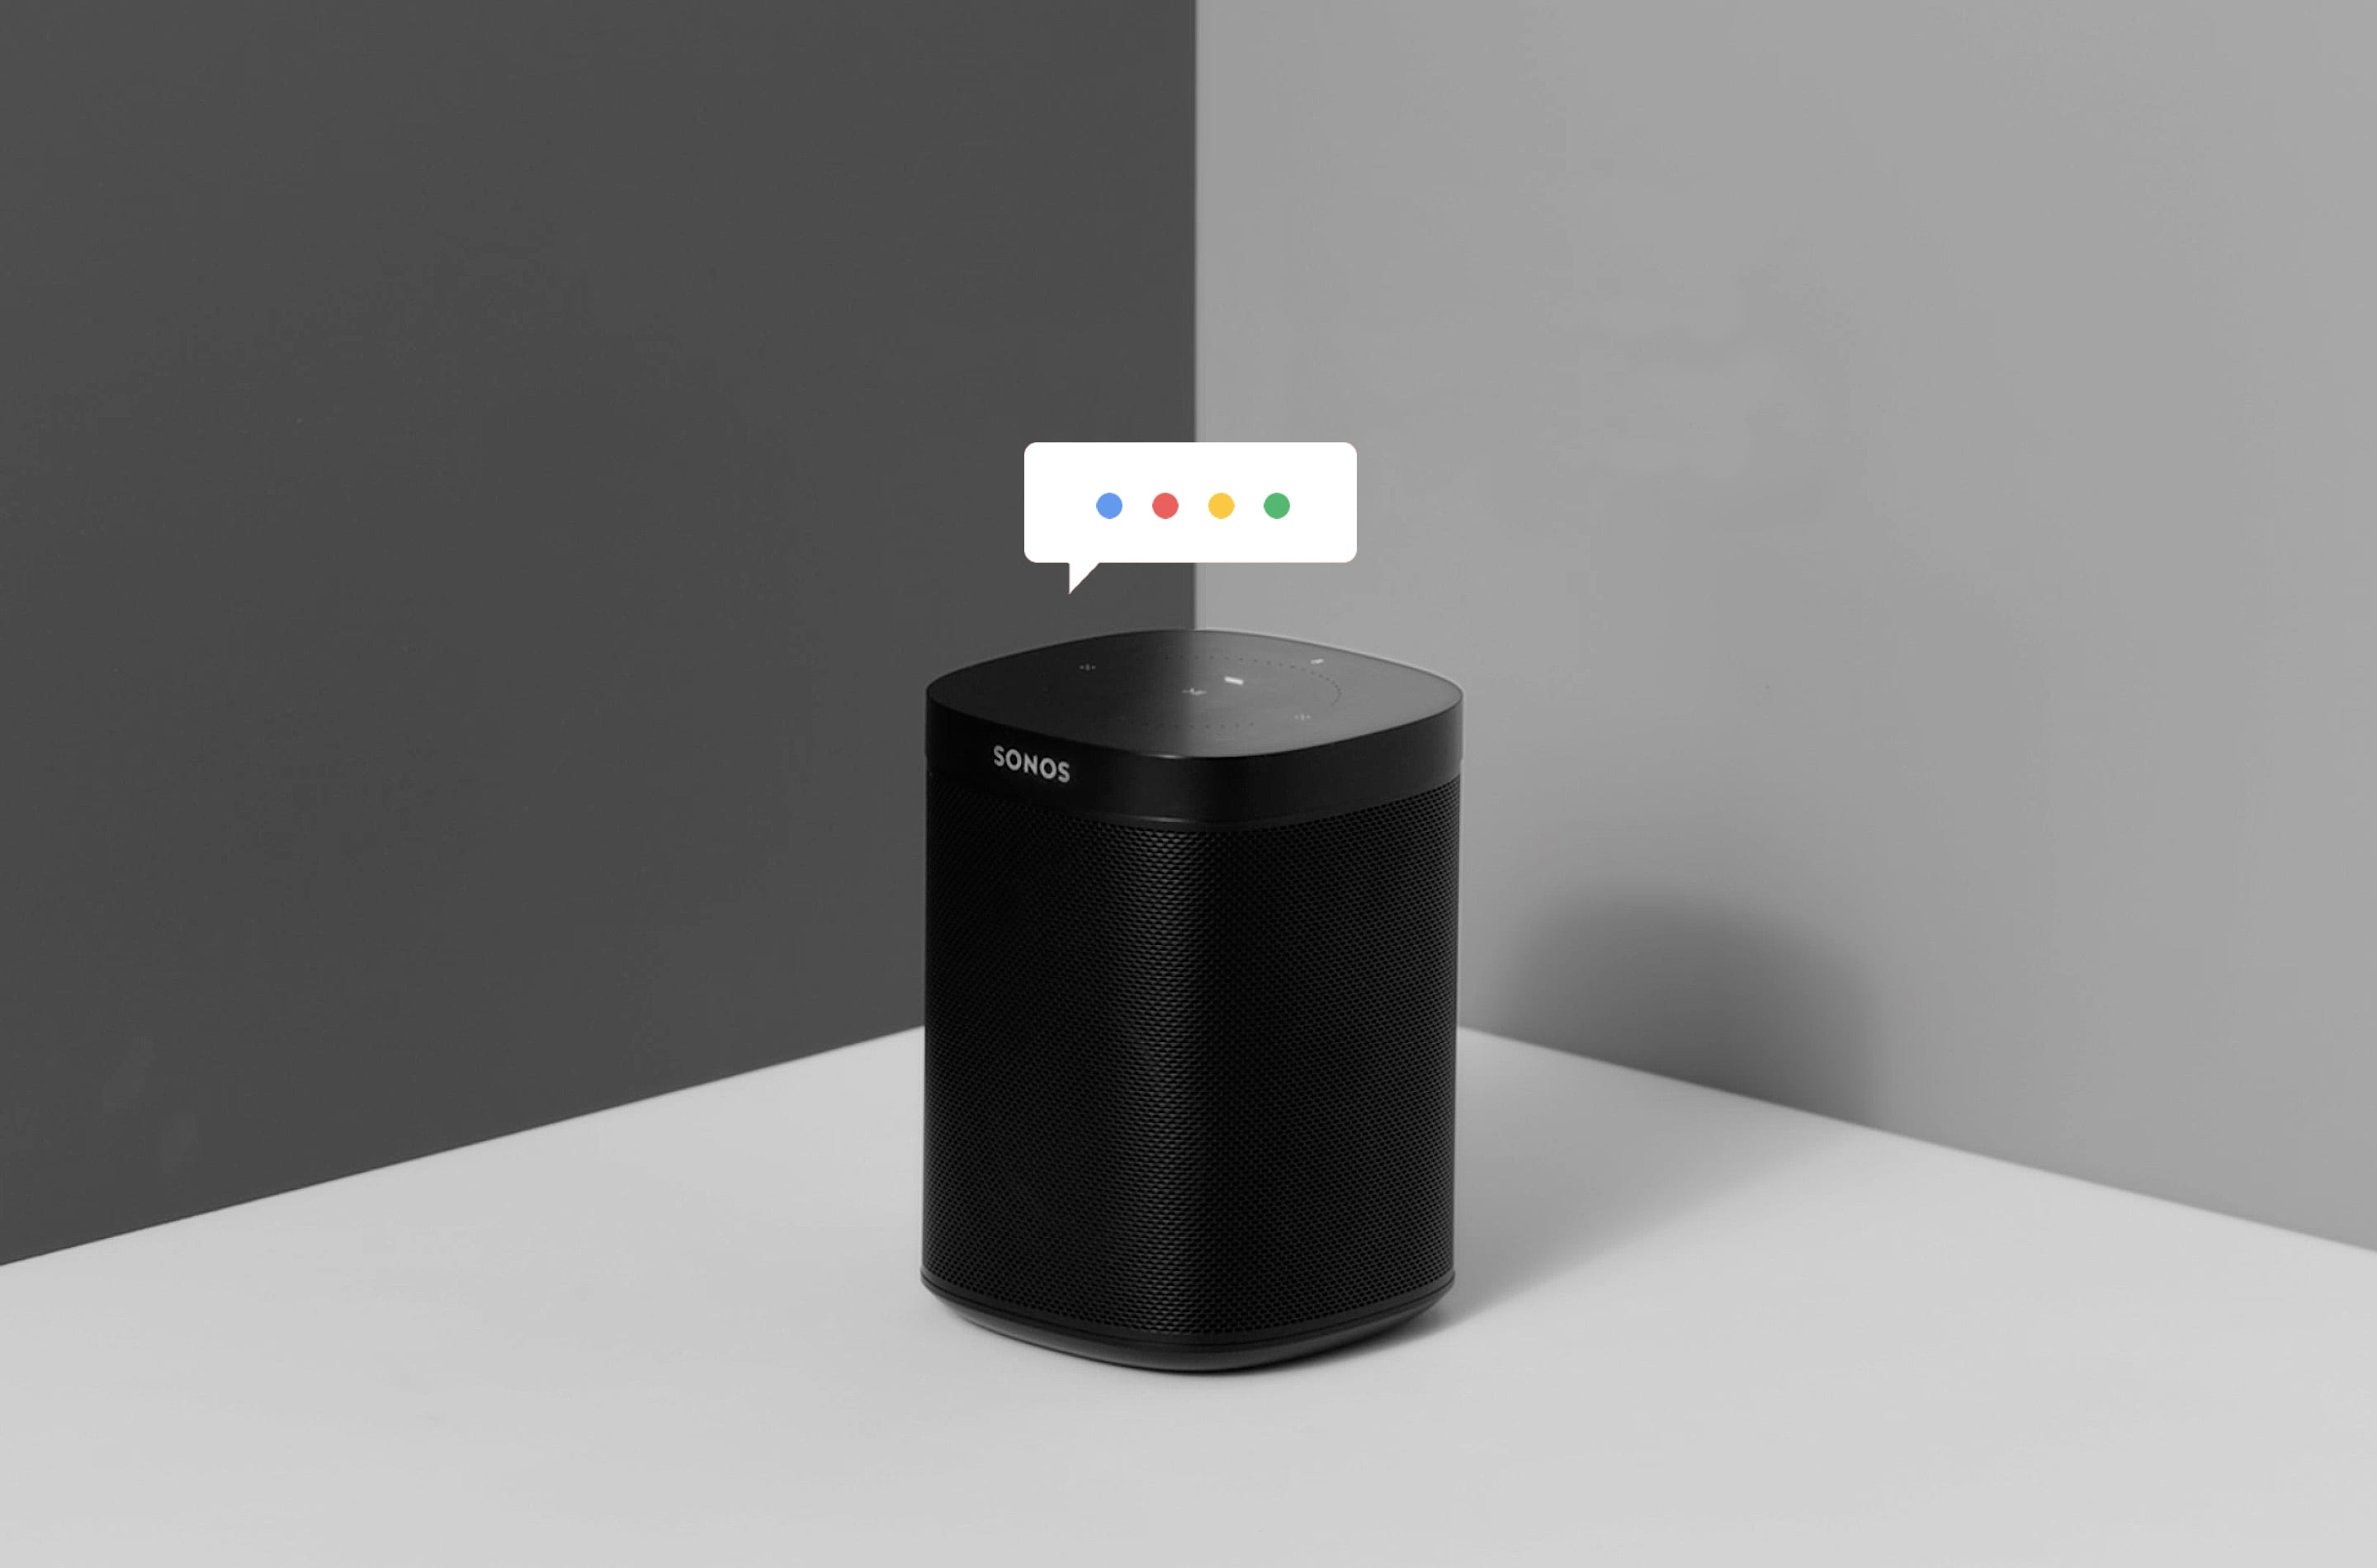 Sonos is delaying support for Google Assistant until 2019